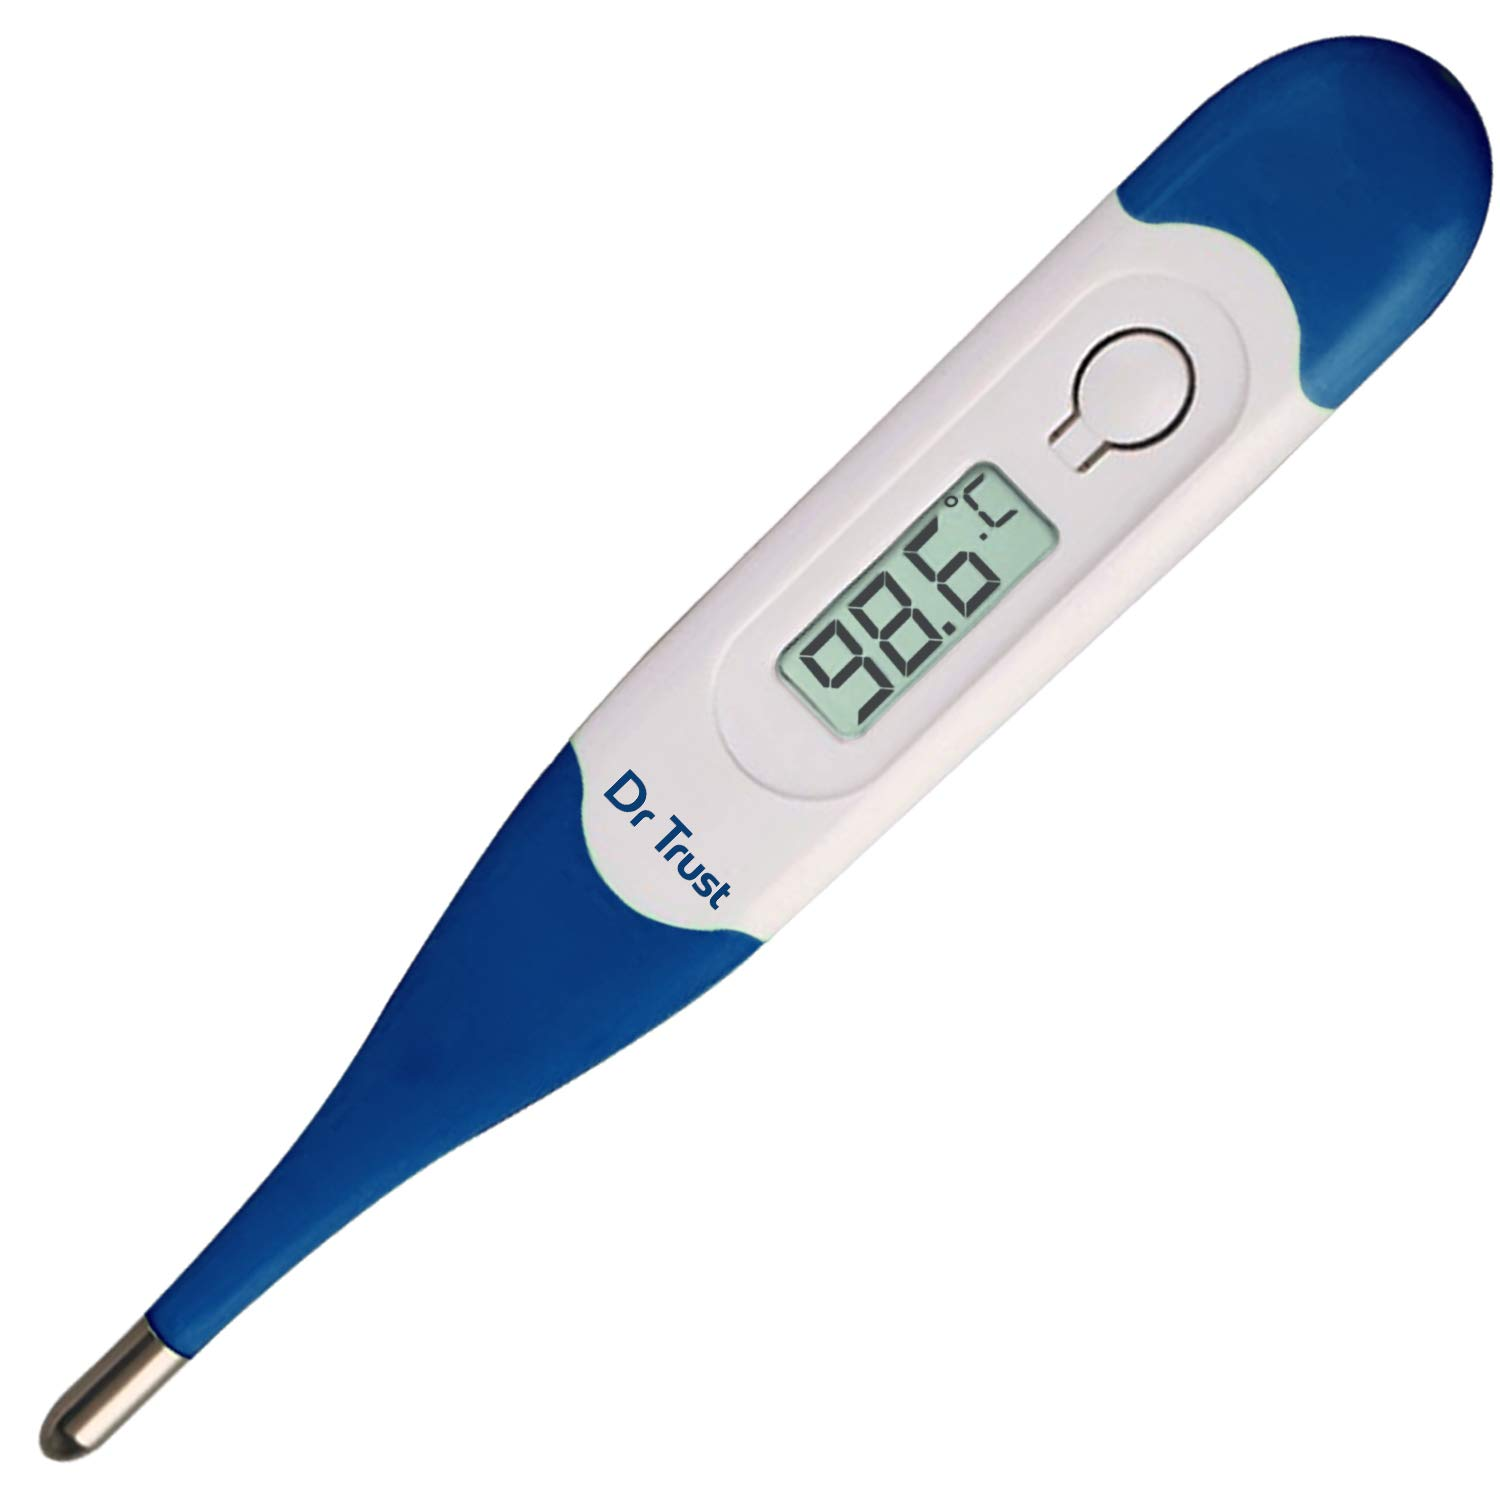 Dr Trust (USA) Waterproof Flexible Tip Digital Thermometer (White) … …